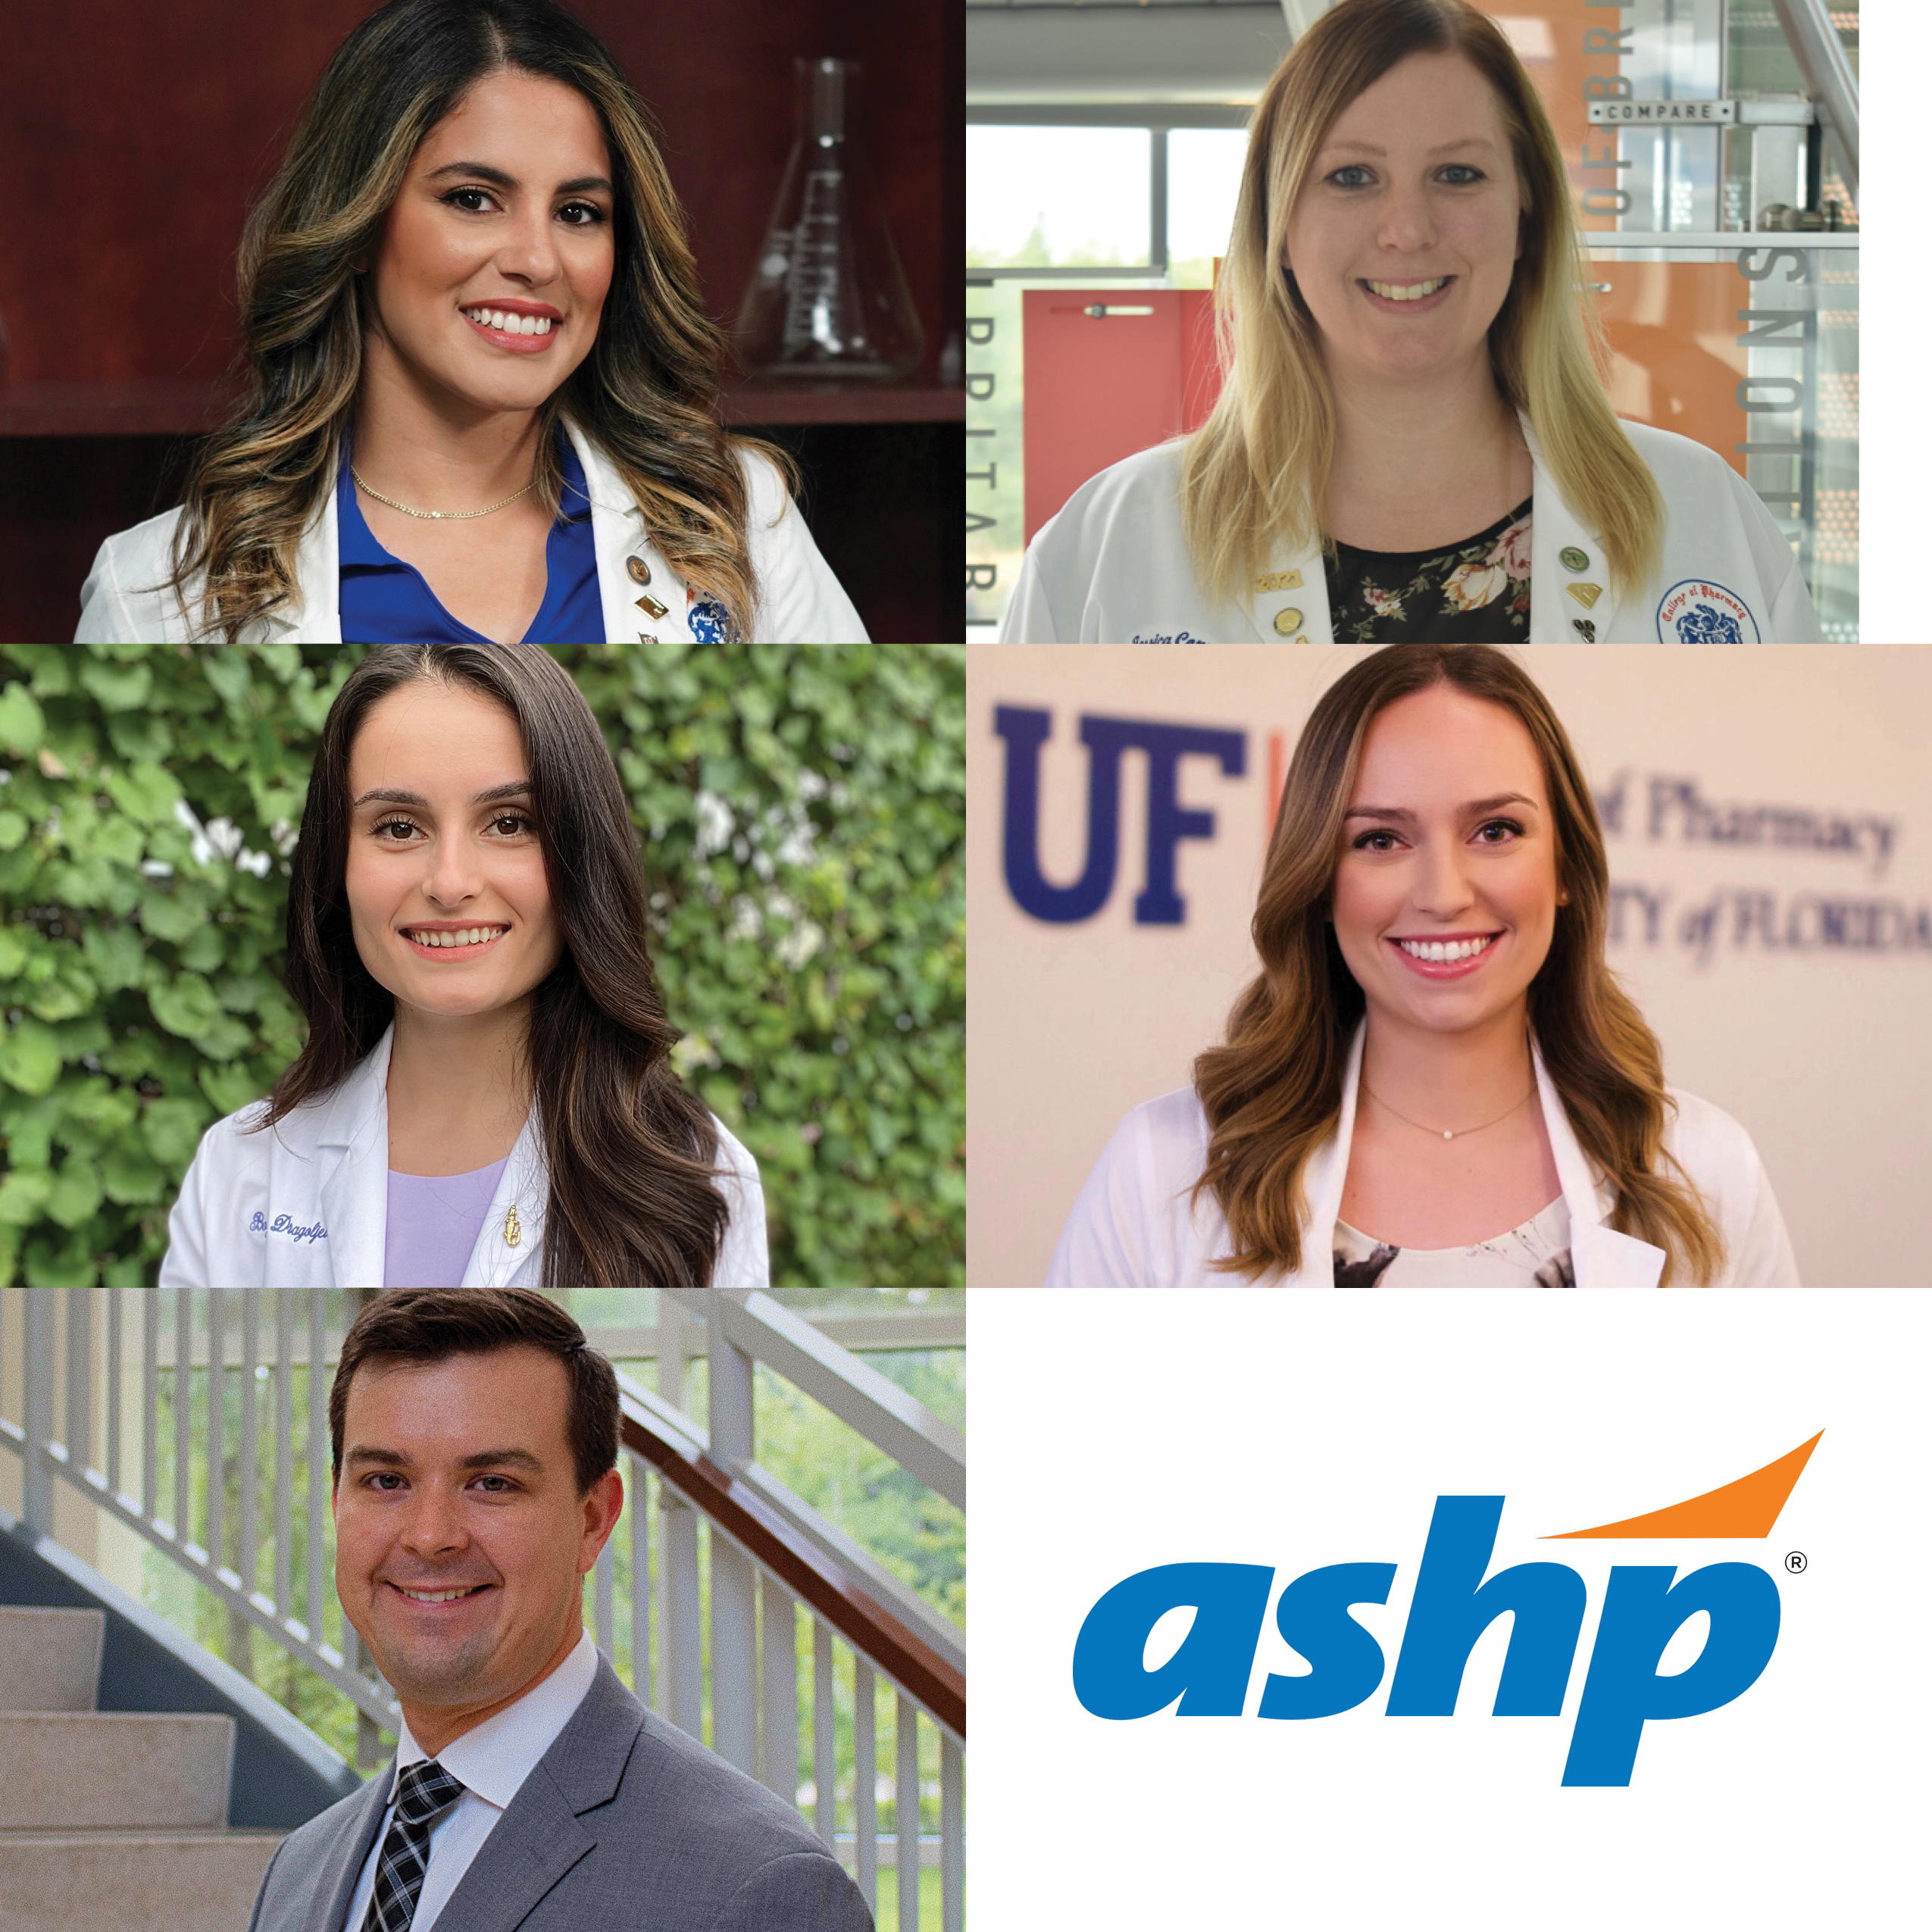 Headshots of the five students chosen to be part of ASHP advisory groups